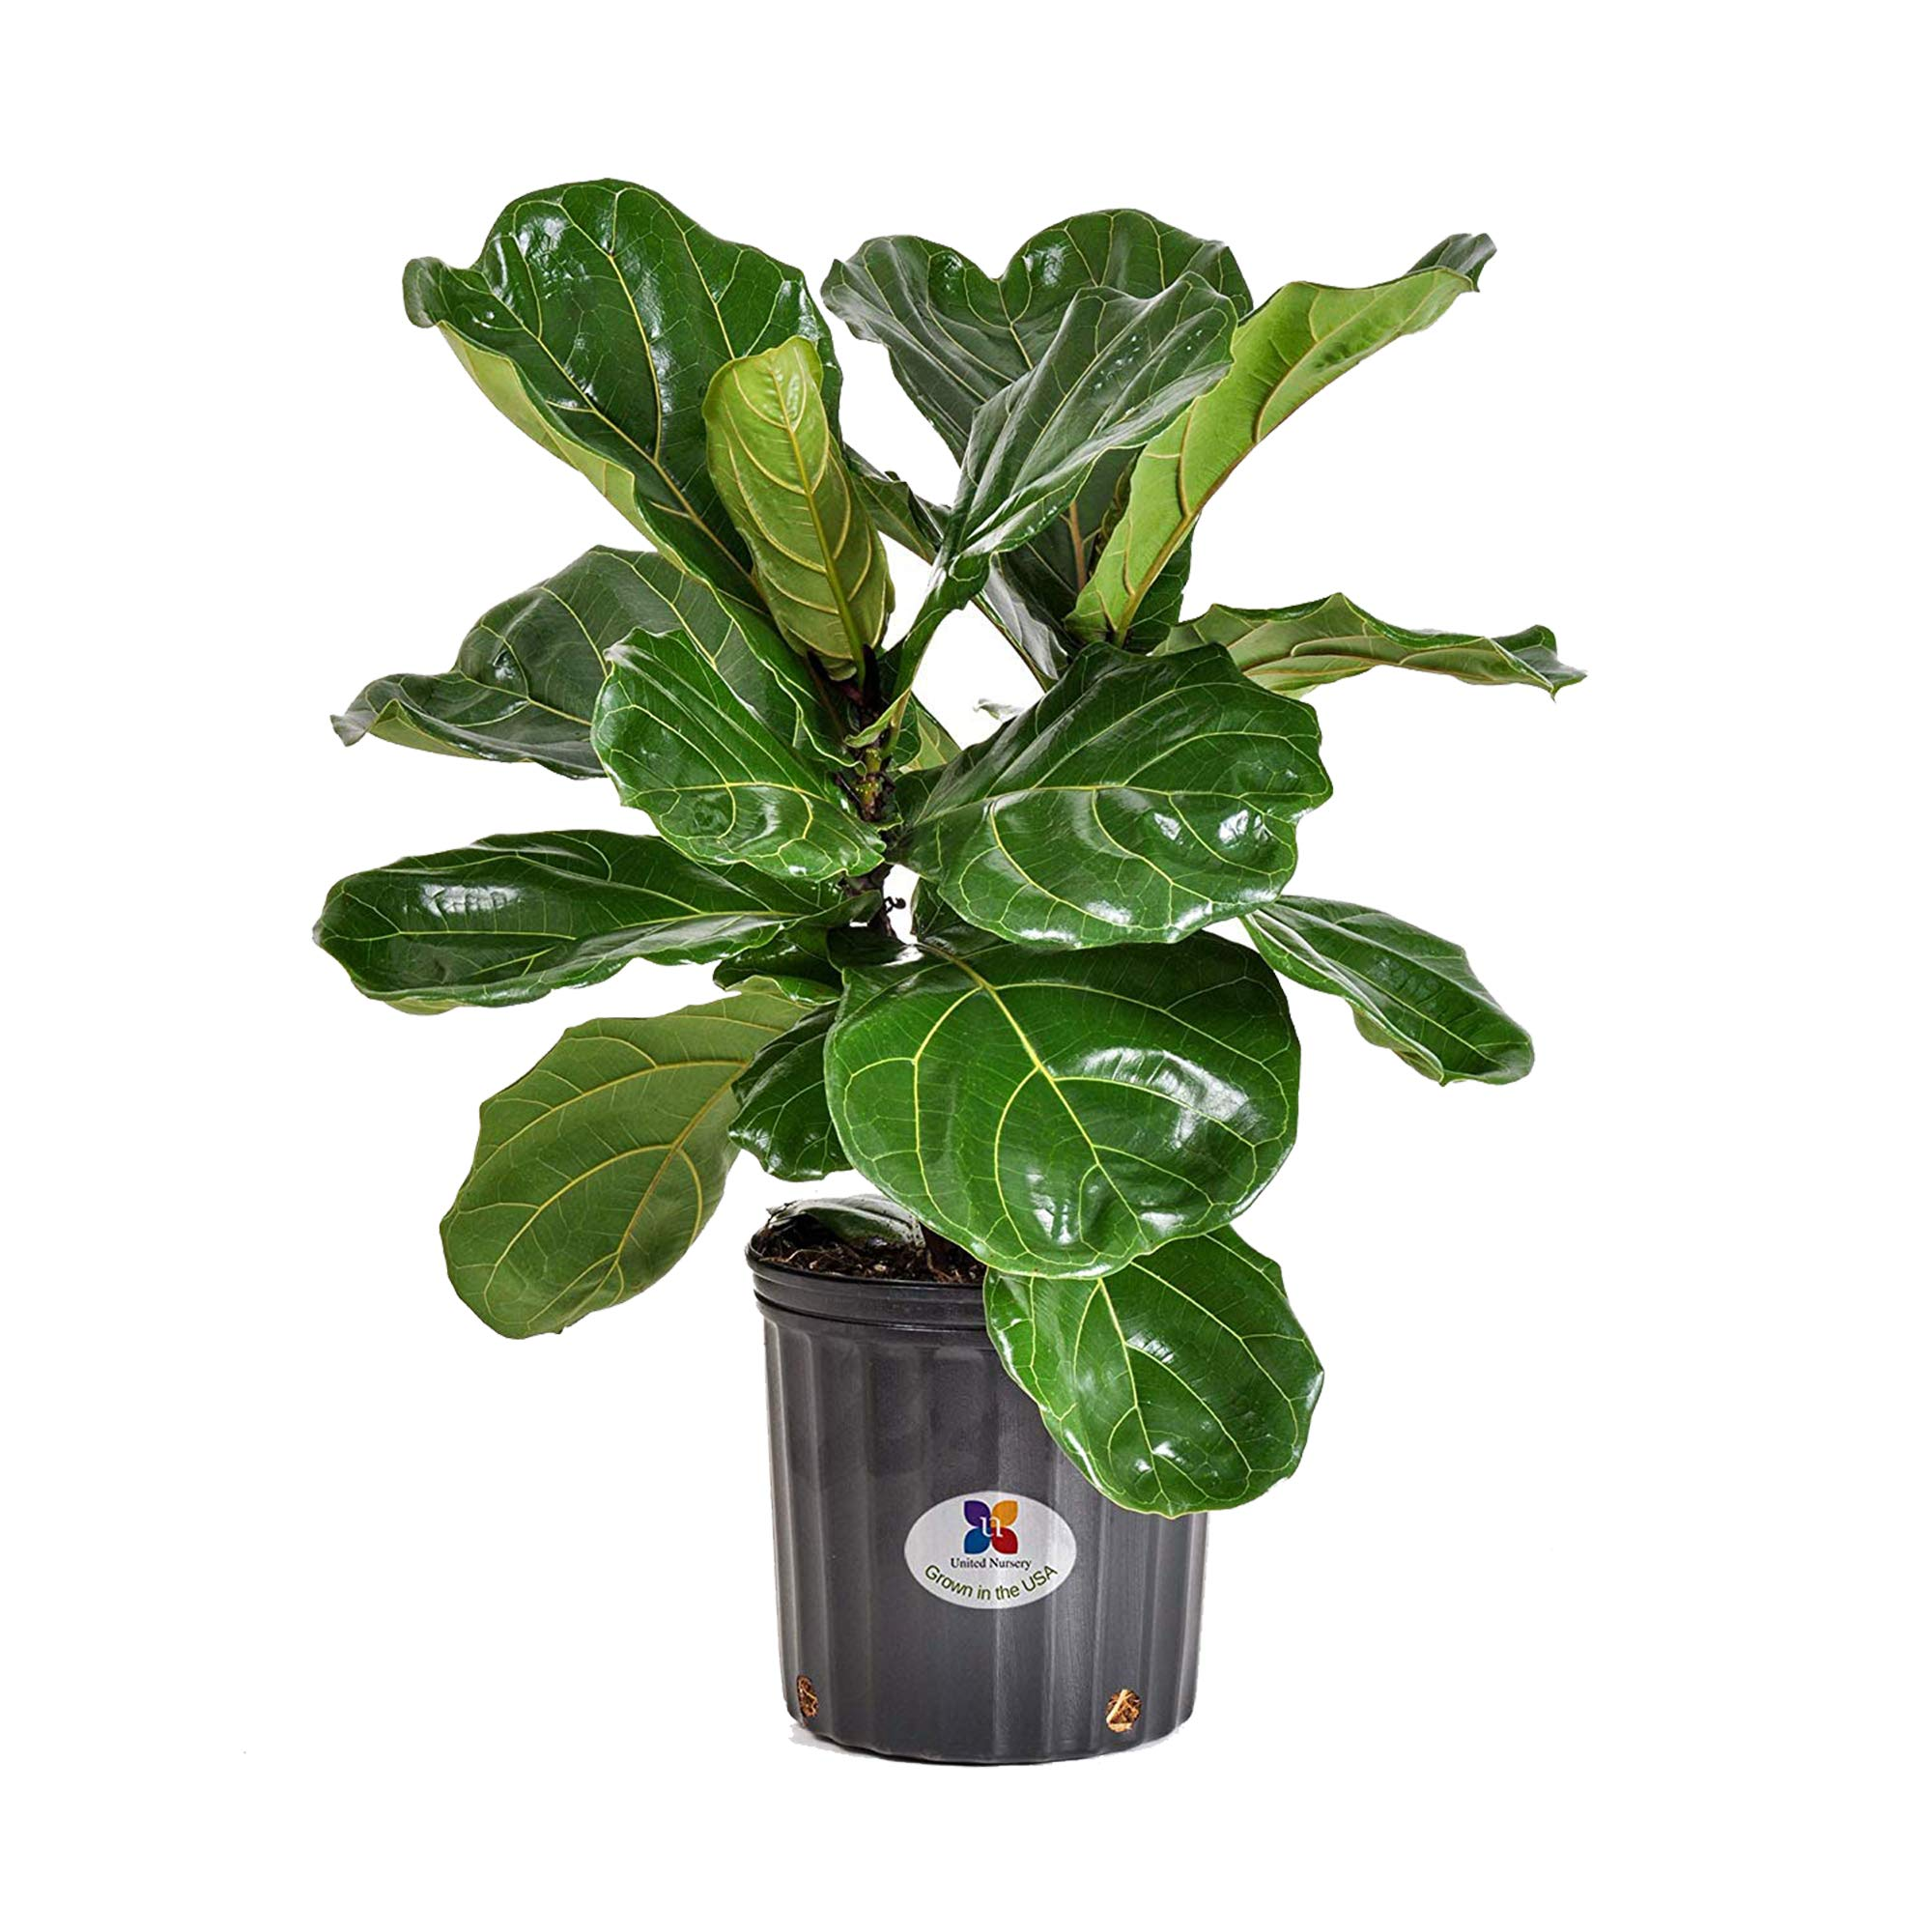 United Nursery Ficus Lyrata Tree Live One Stem Indoor Plant Fiddle-Leaf Fig 28-36'' Shipping Size Fresh in Grower 9.25'' Pot from Our Florida Farm by United Nursery (Image #1)